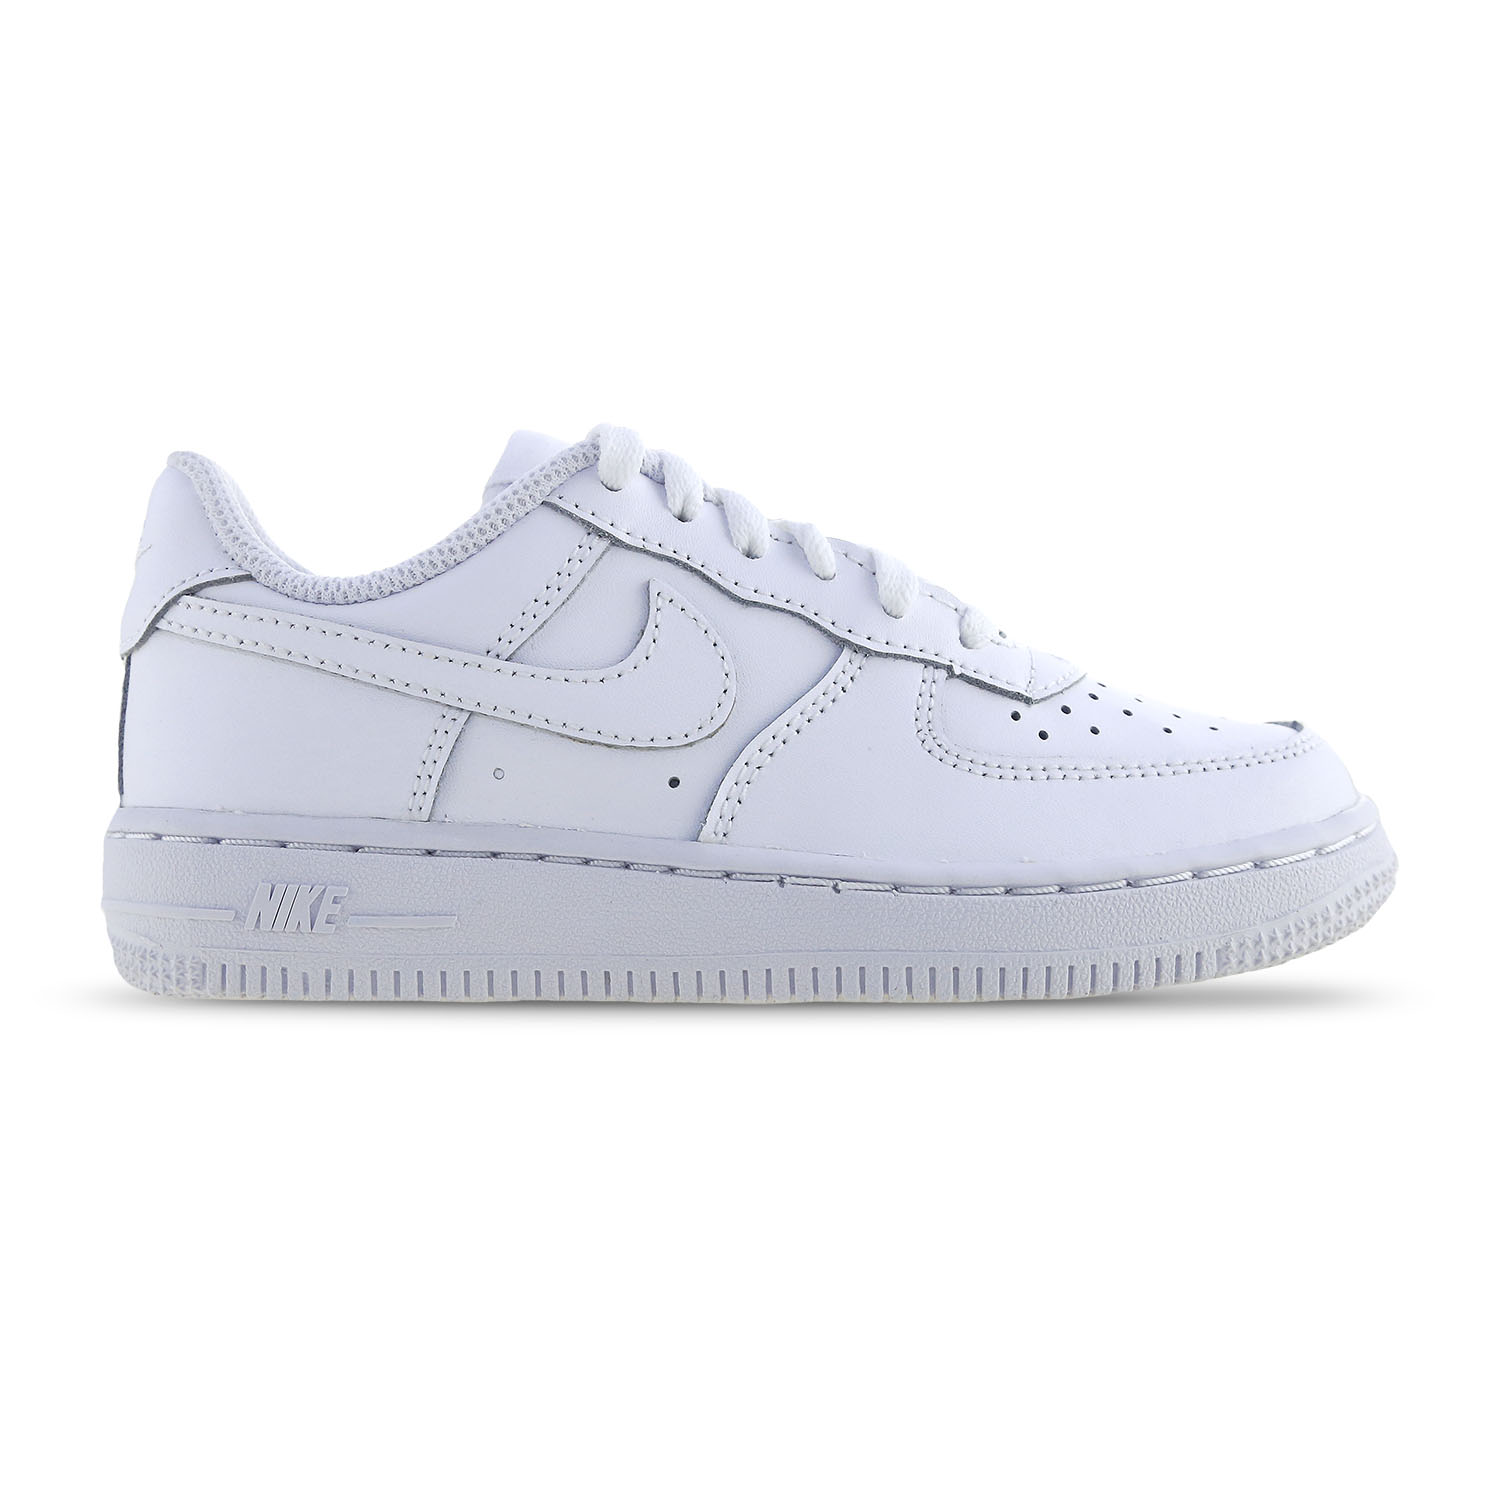 Nike Air Force 1 PS ( 314193-117 ) παπούτσια    παιδί    προσχολικά  size 27 5   35